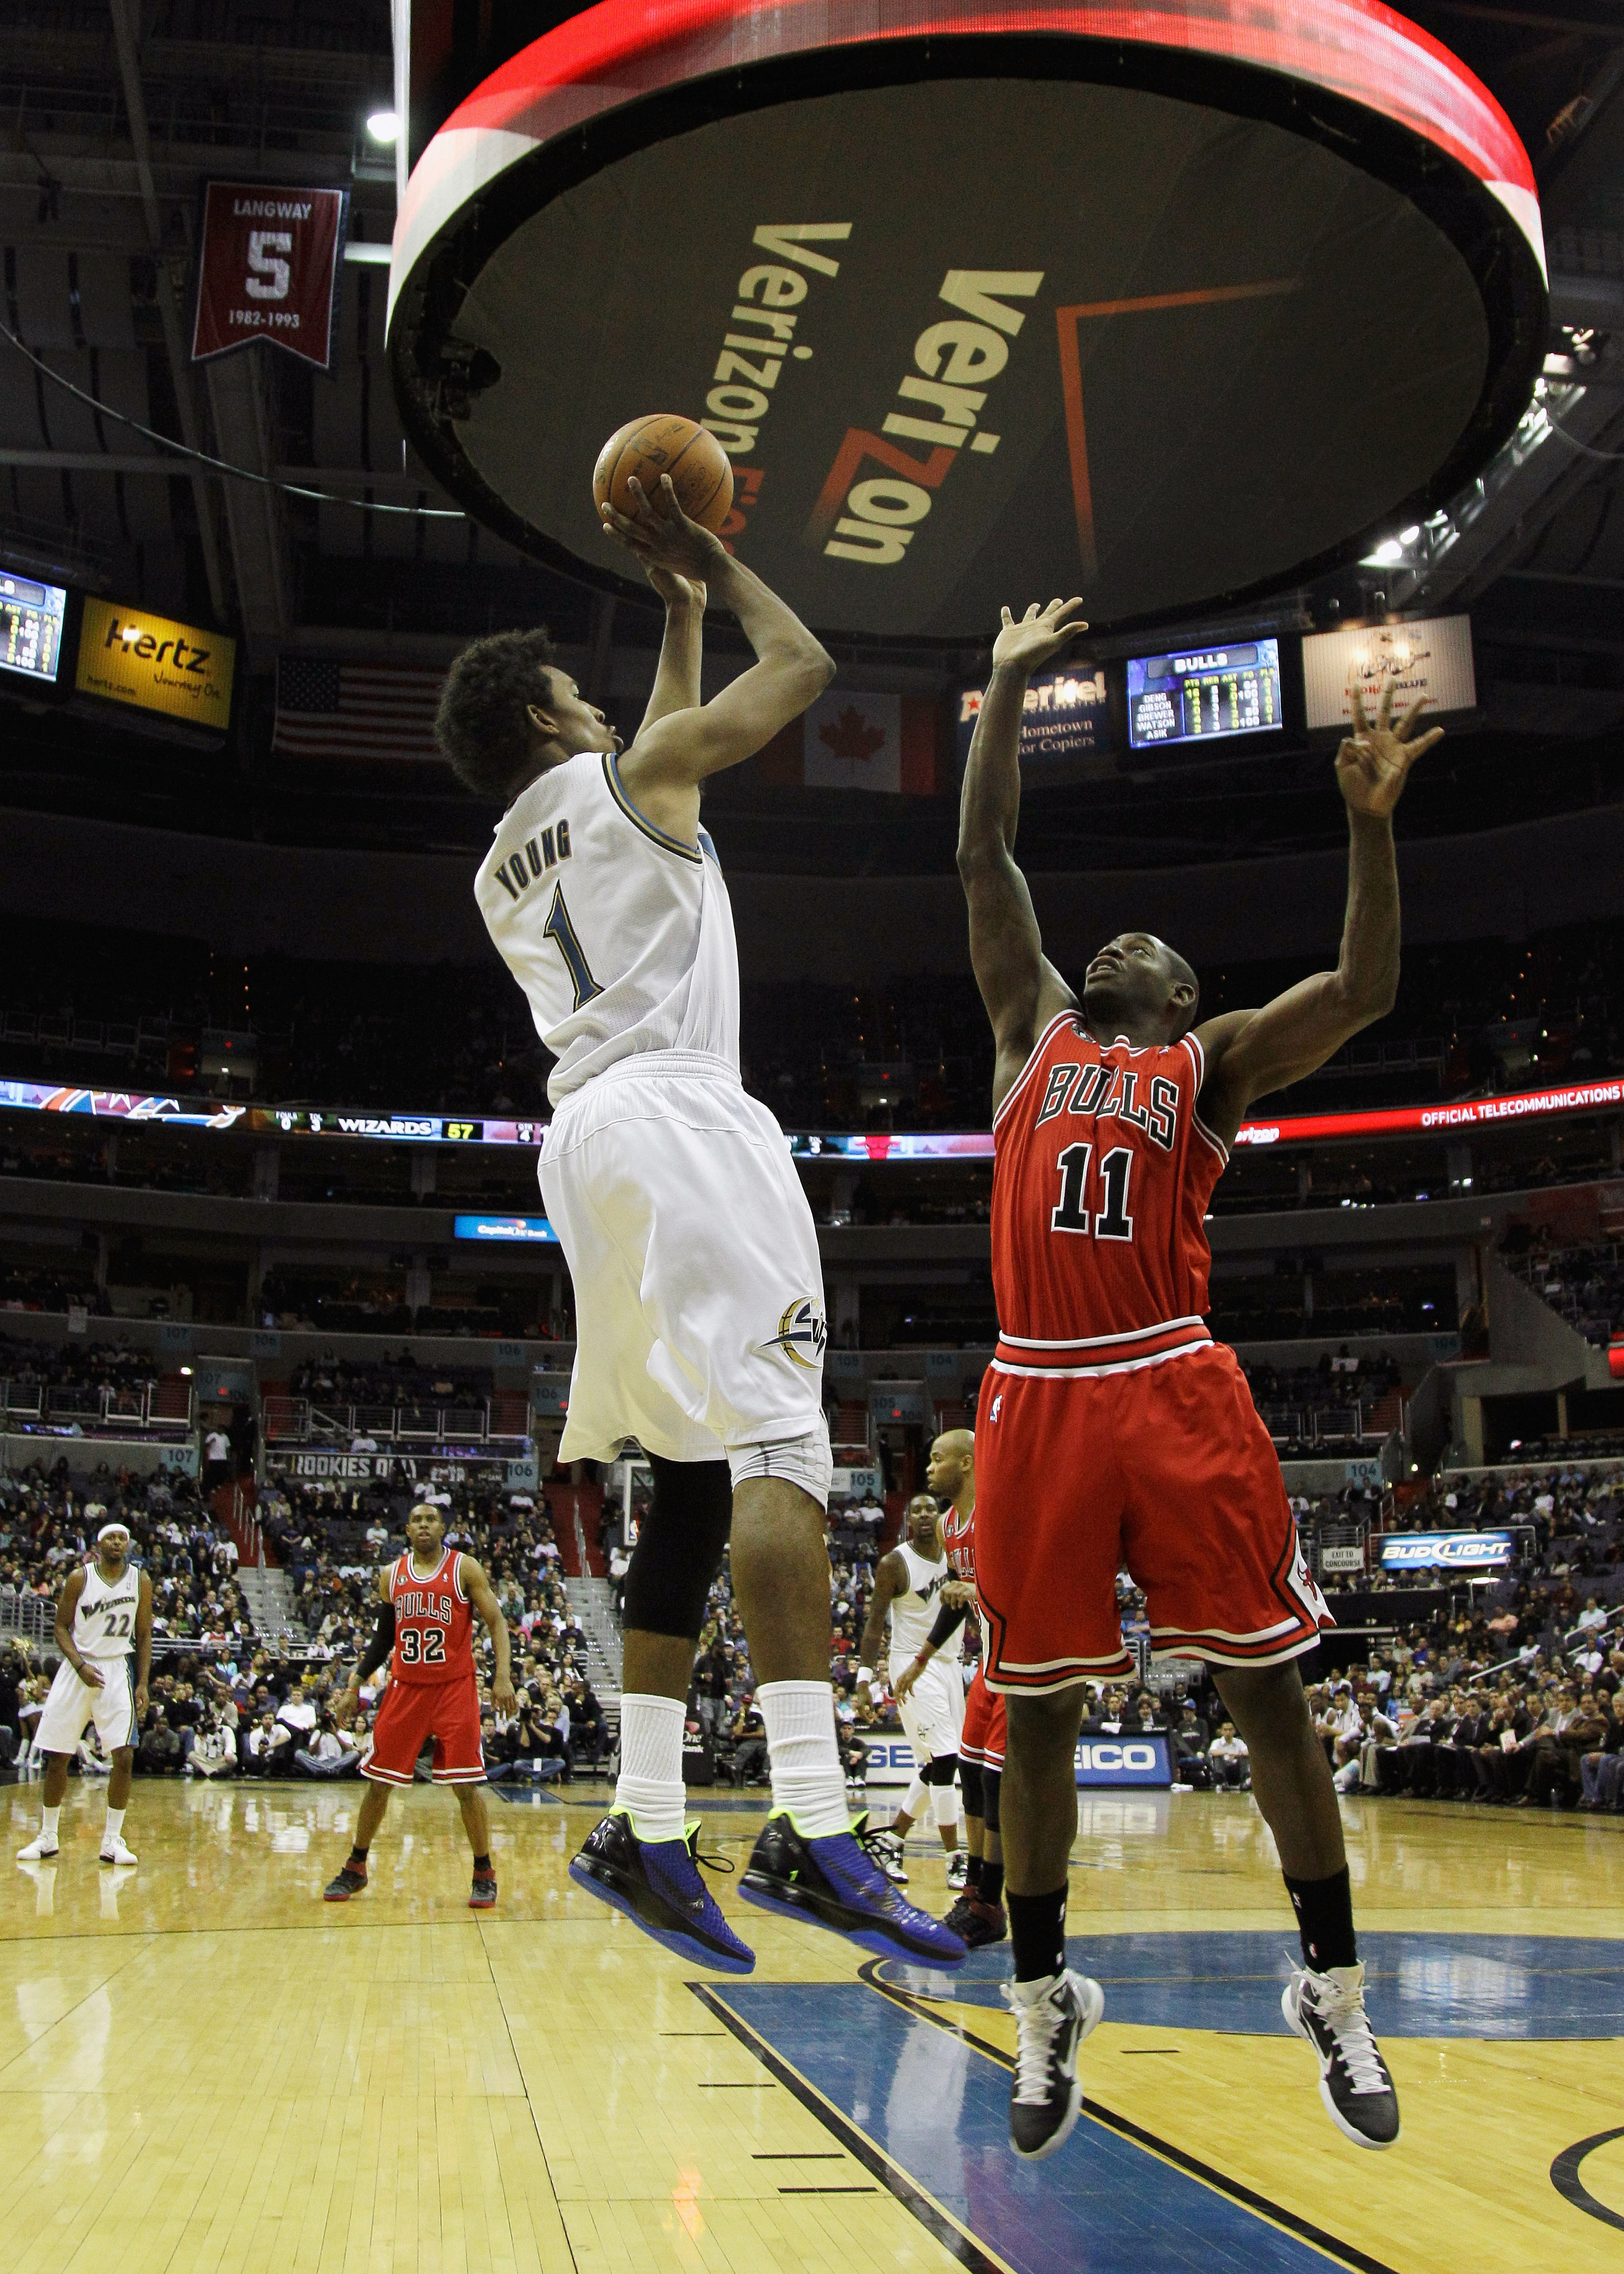 WASHINGTON, DC - FEBRUARY 28: Nick Young #1 of the Washington Wizards shoots over Ronnie Brewer #11 of the Chicago Bulls at the Verizon Center in Washington on February 28, 2011 in Washington, DC. NOTE TO USER: User expressly acknowledges and agrees that,